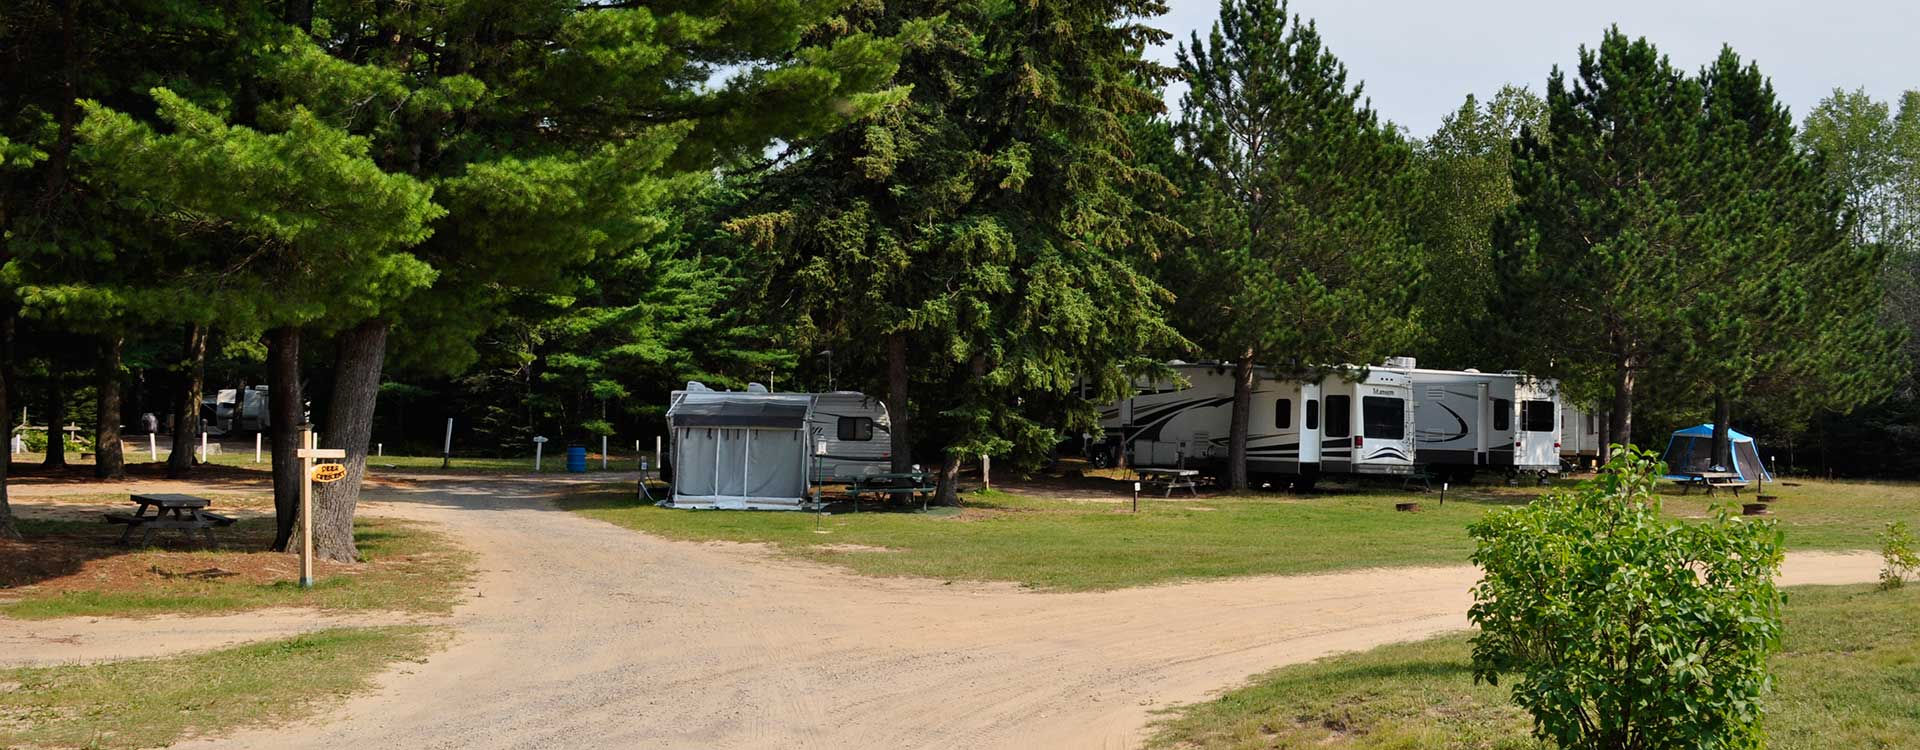 blueberry-hill-campground-motel-intro4